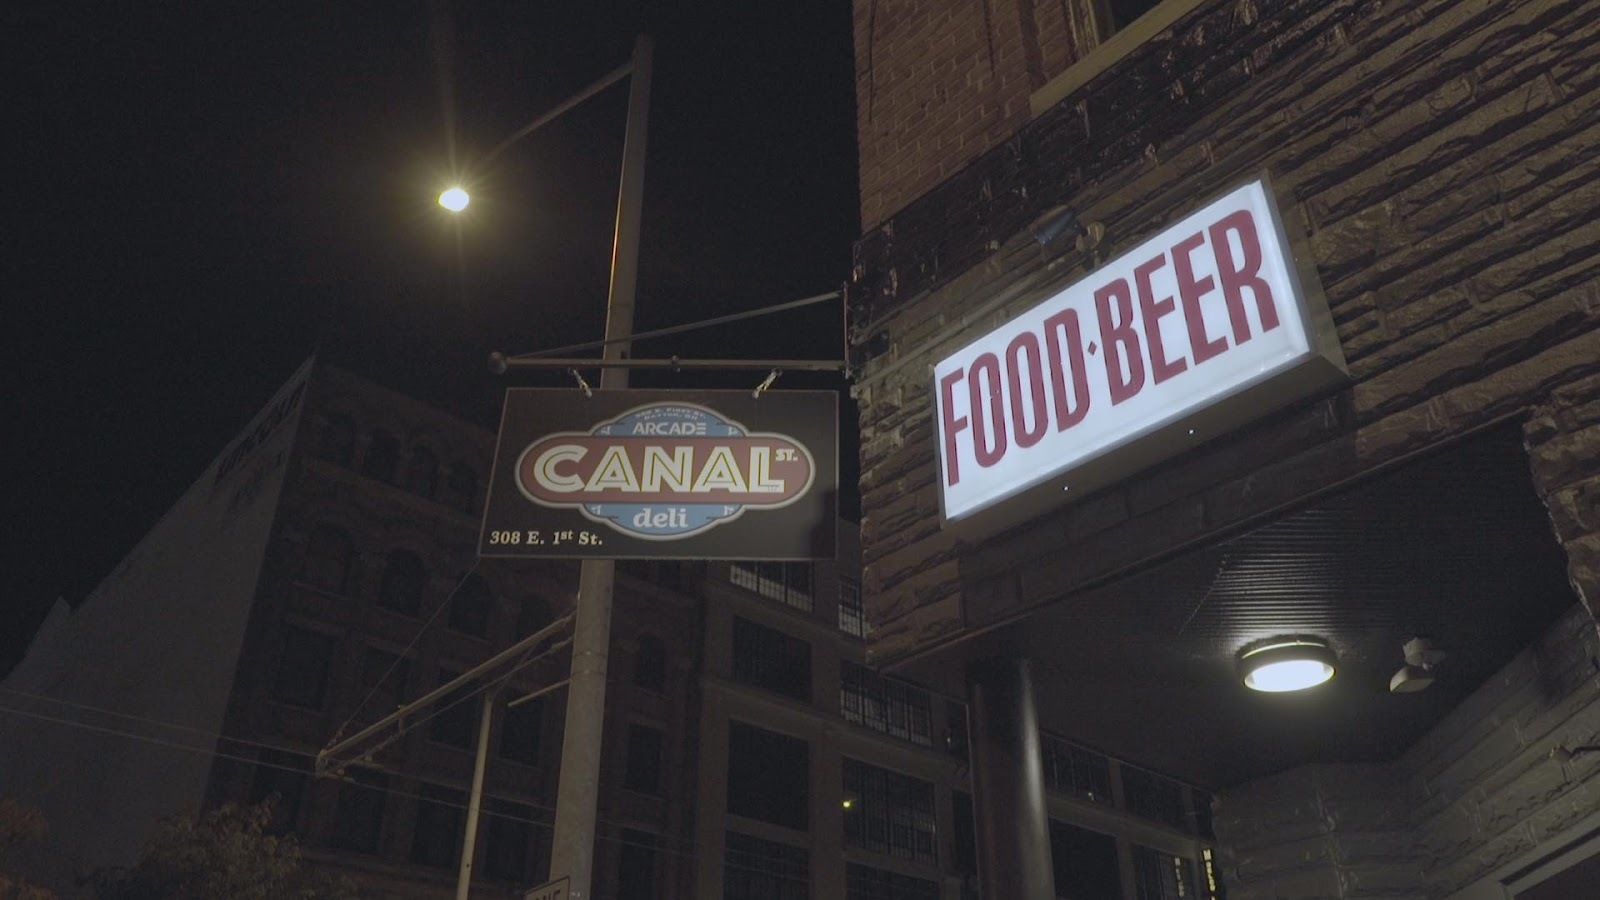 Canal Street Arcade & Deli sign next to a food & beer sign